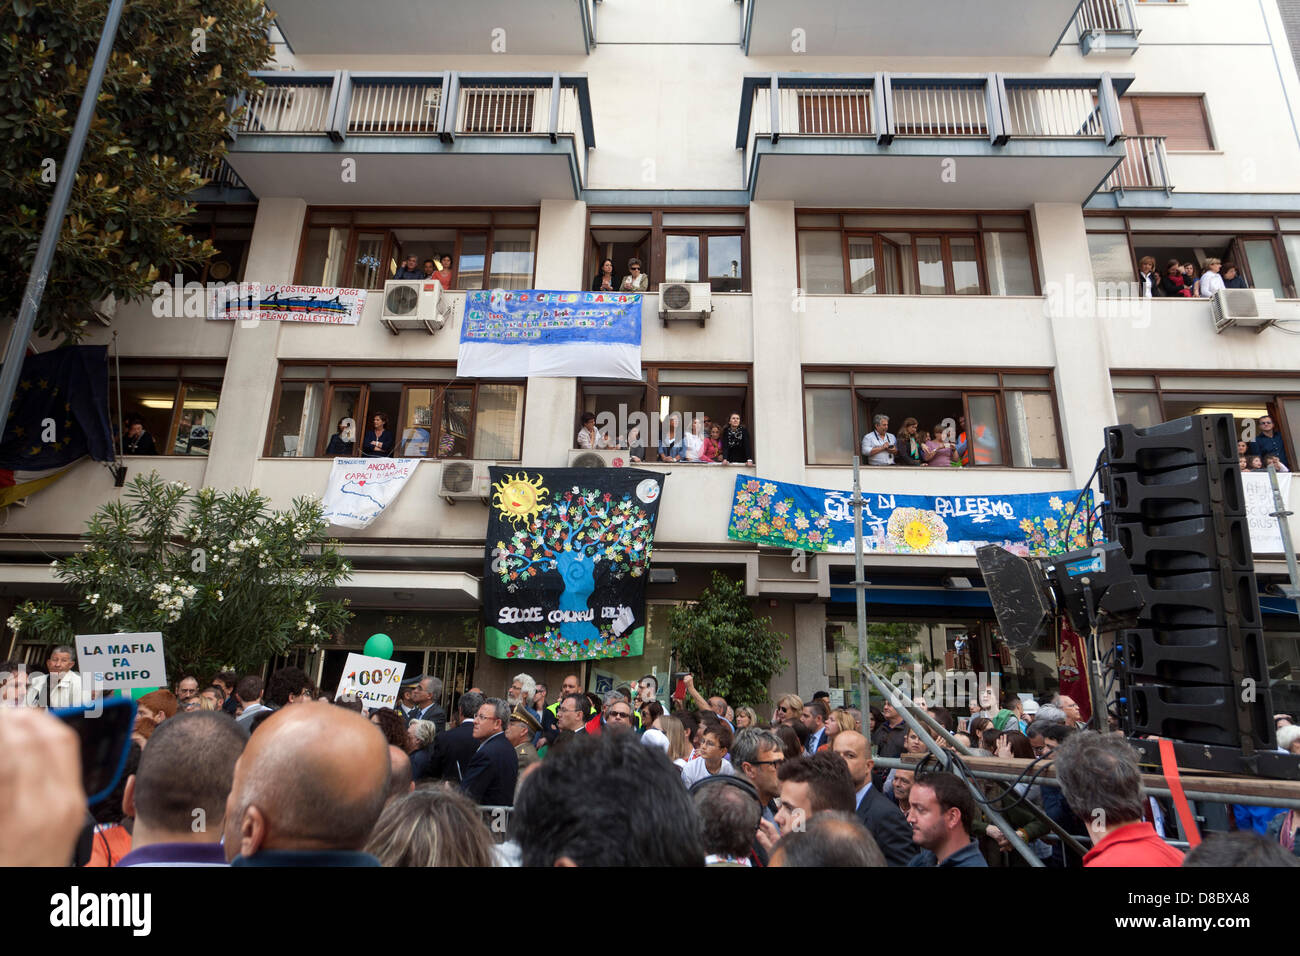 Banners hanging from windows and balconies in the building where used to live Giovanni Falcone and his wife Francesca - Stock Image